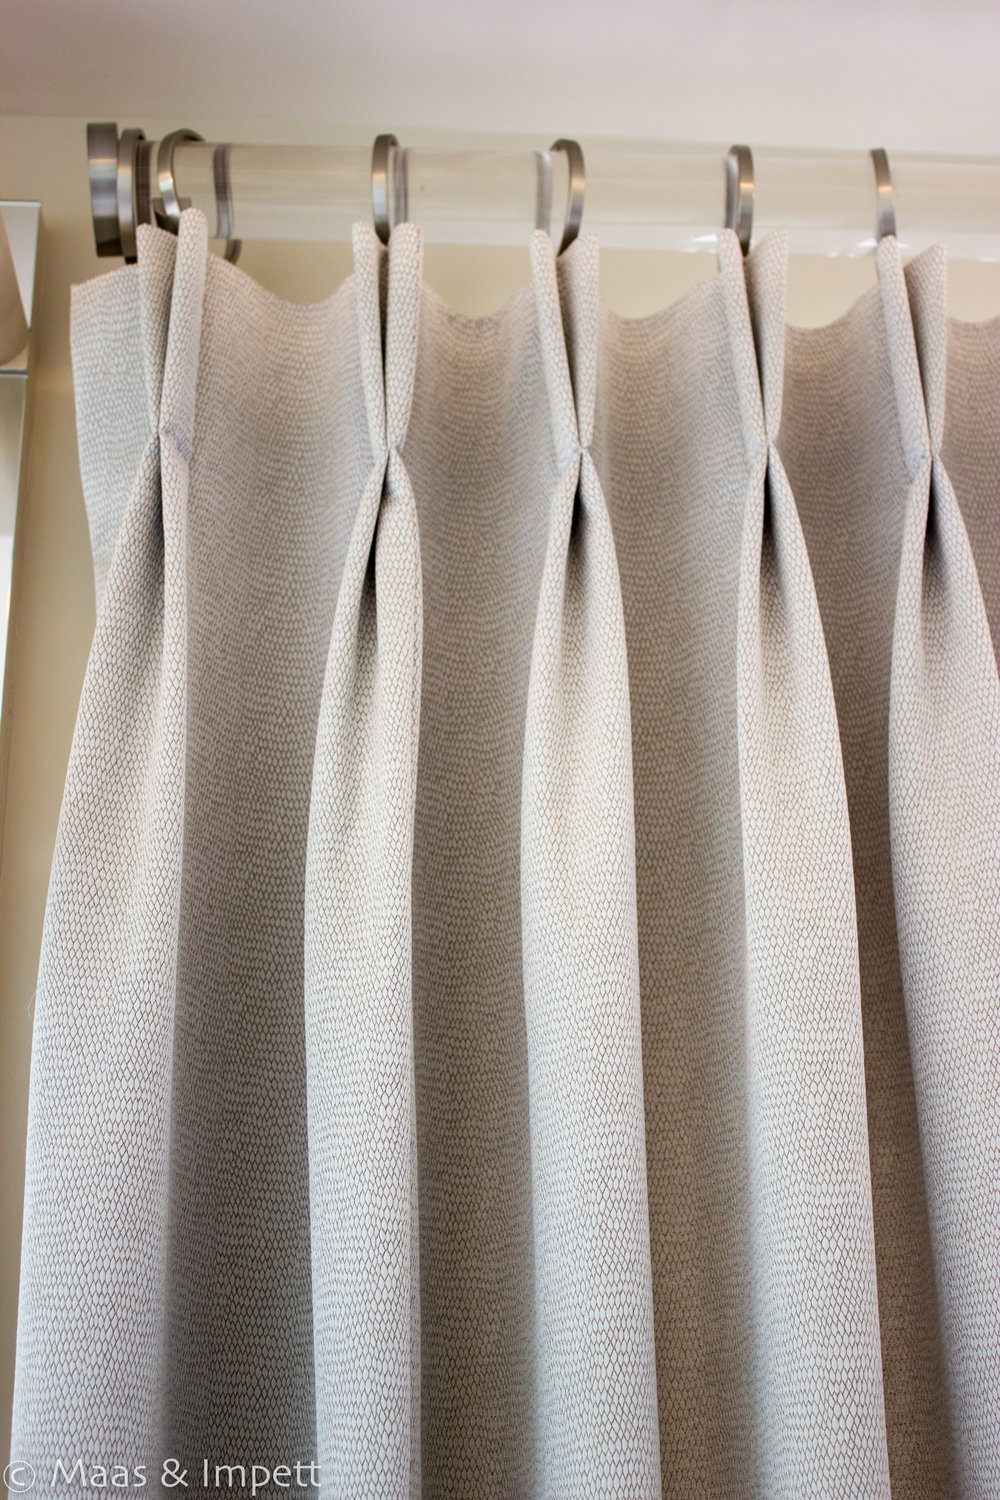 Made to measure curtains created by Interior designers Maas & Impett